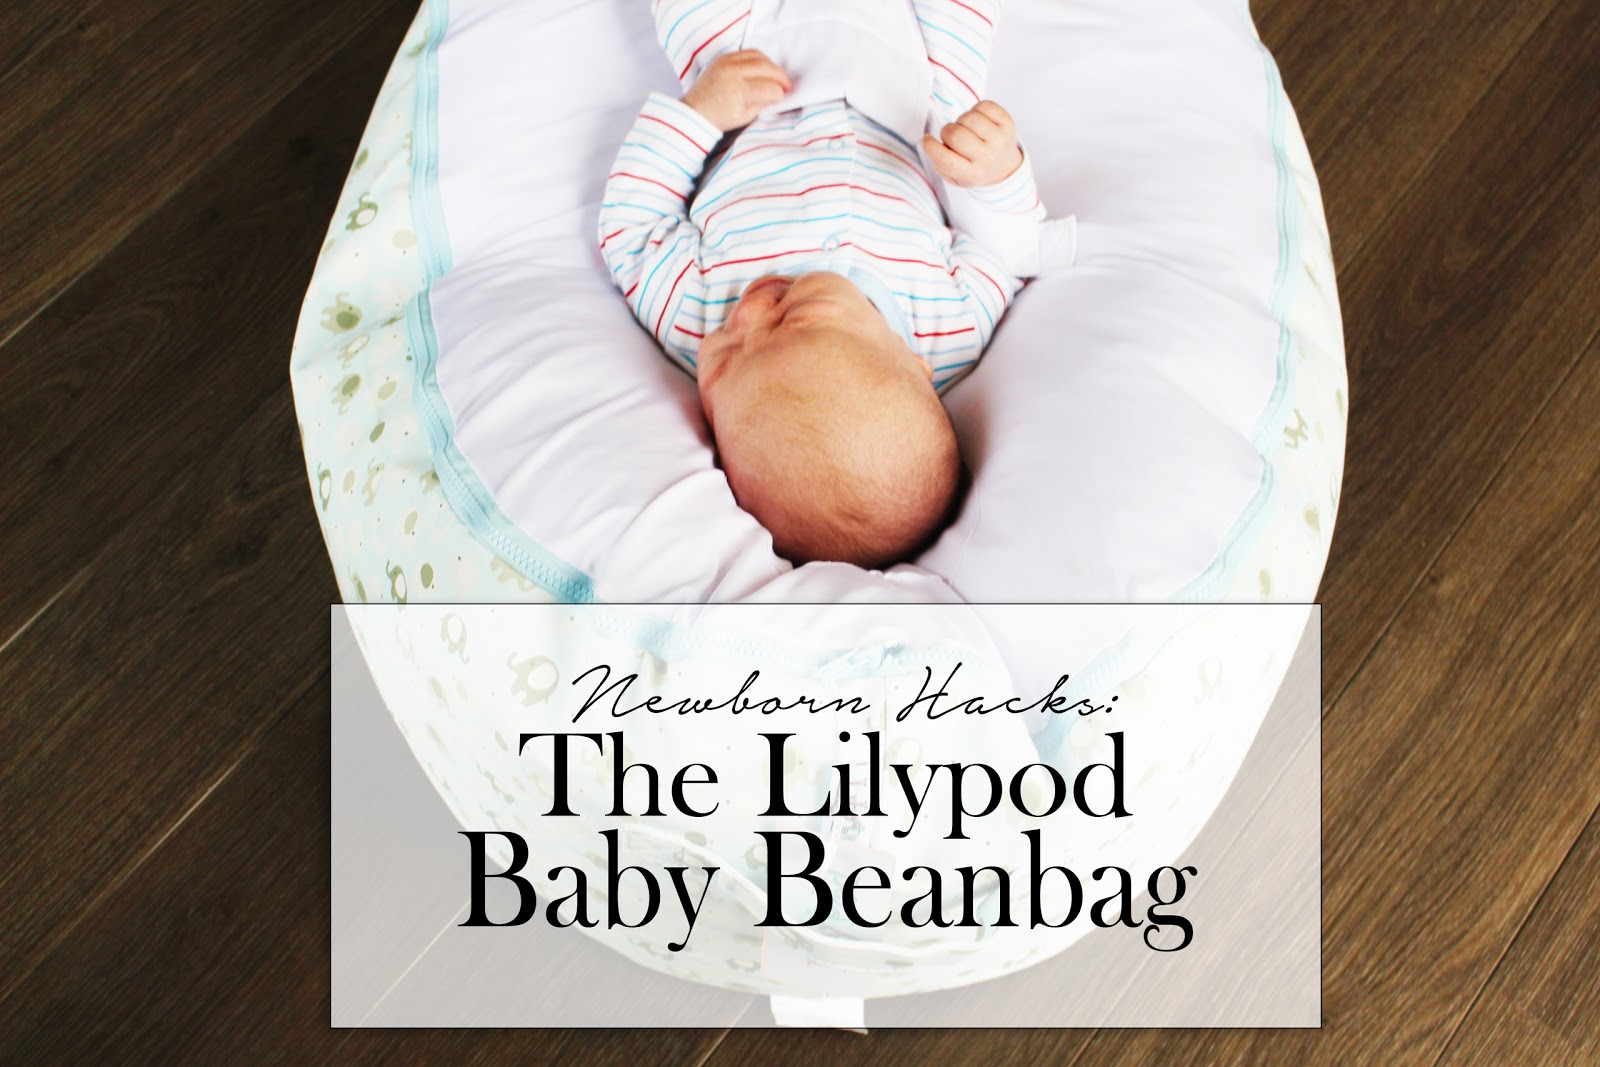 Lilypod Baby Bean Bag Colic Babies Relief Apples and Pips